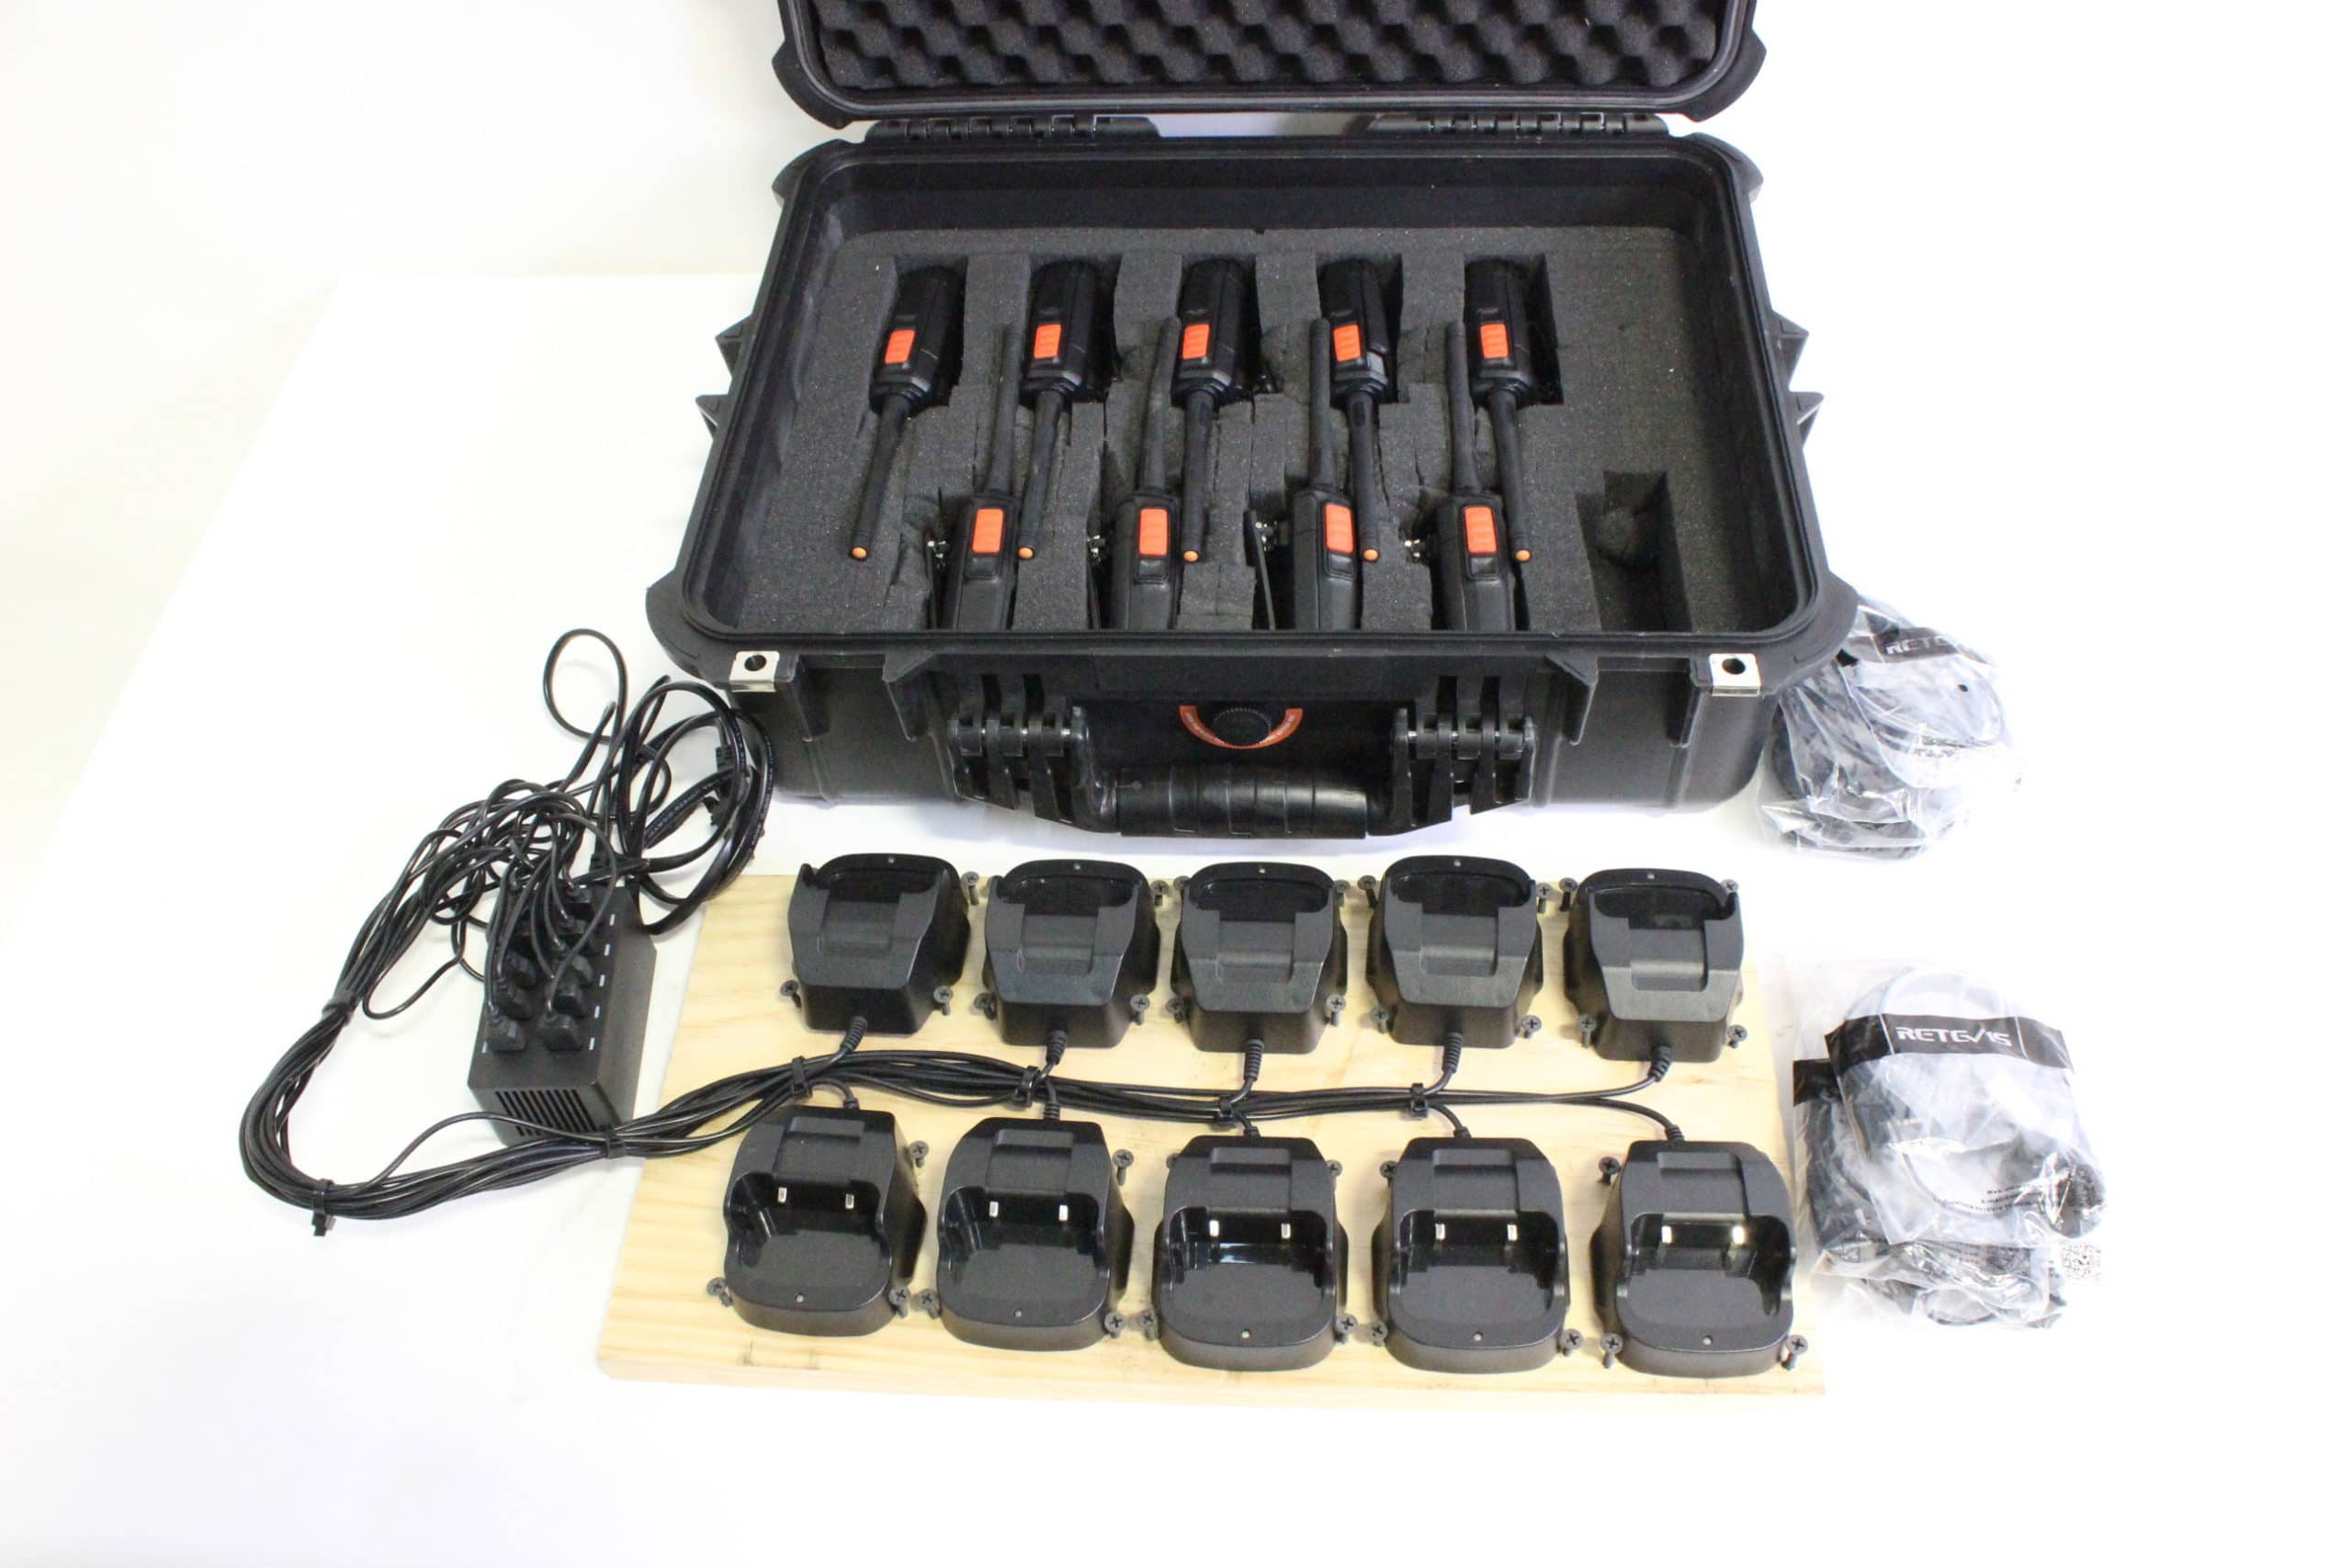 retevis-h777-frs-two-way-business-radio-kit-9-h777-frs-radios-10-h777-charging-docks-9-2-pin-ptt-mic-covert-acoustic-tube-in-ear-earpiece-headset-w-apache-4800-hard-case main